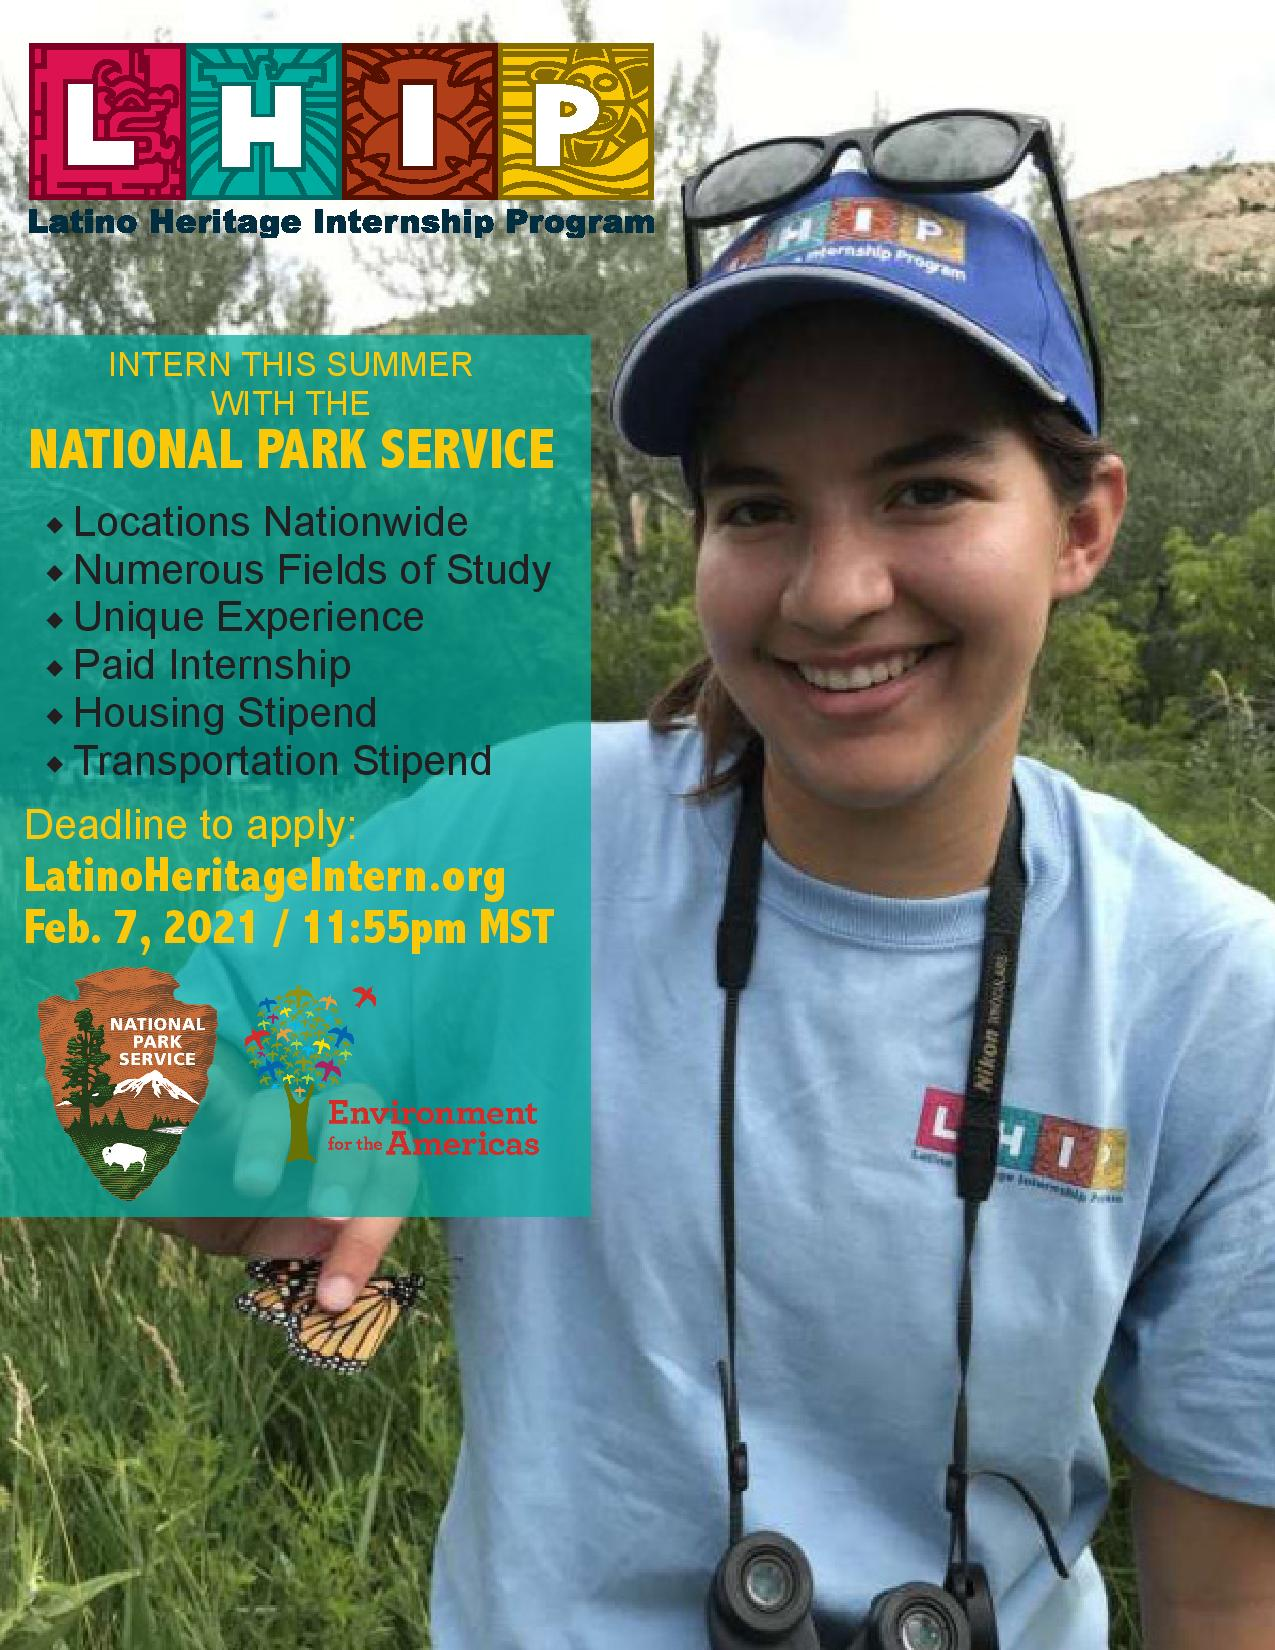 National Park Internship, click for more information!